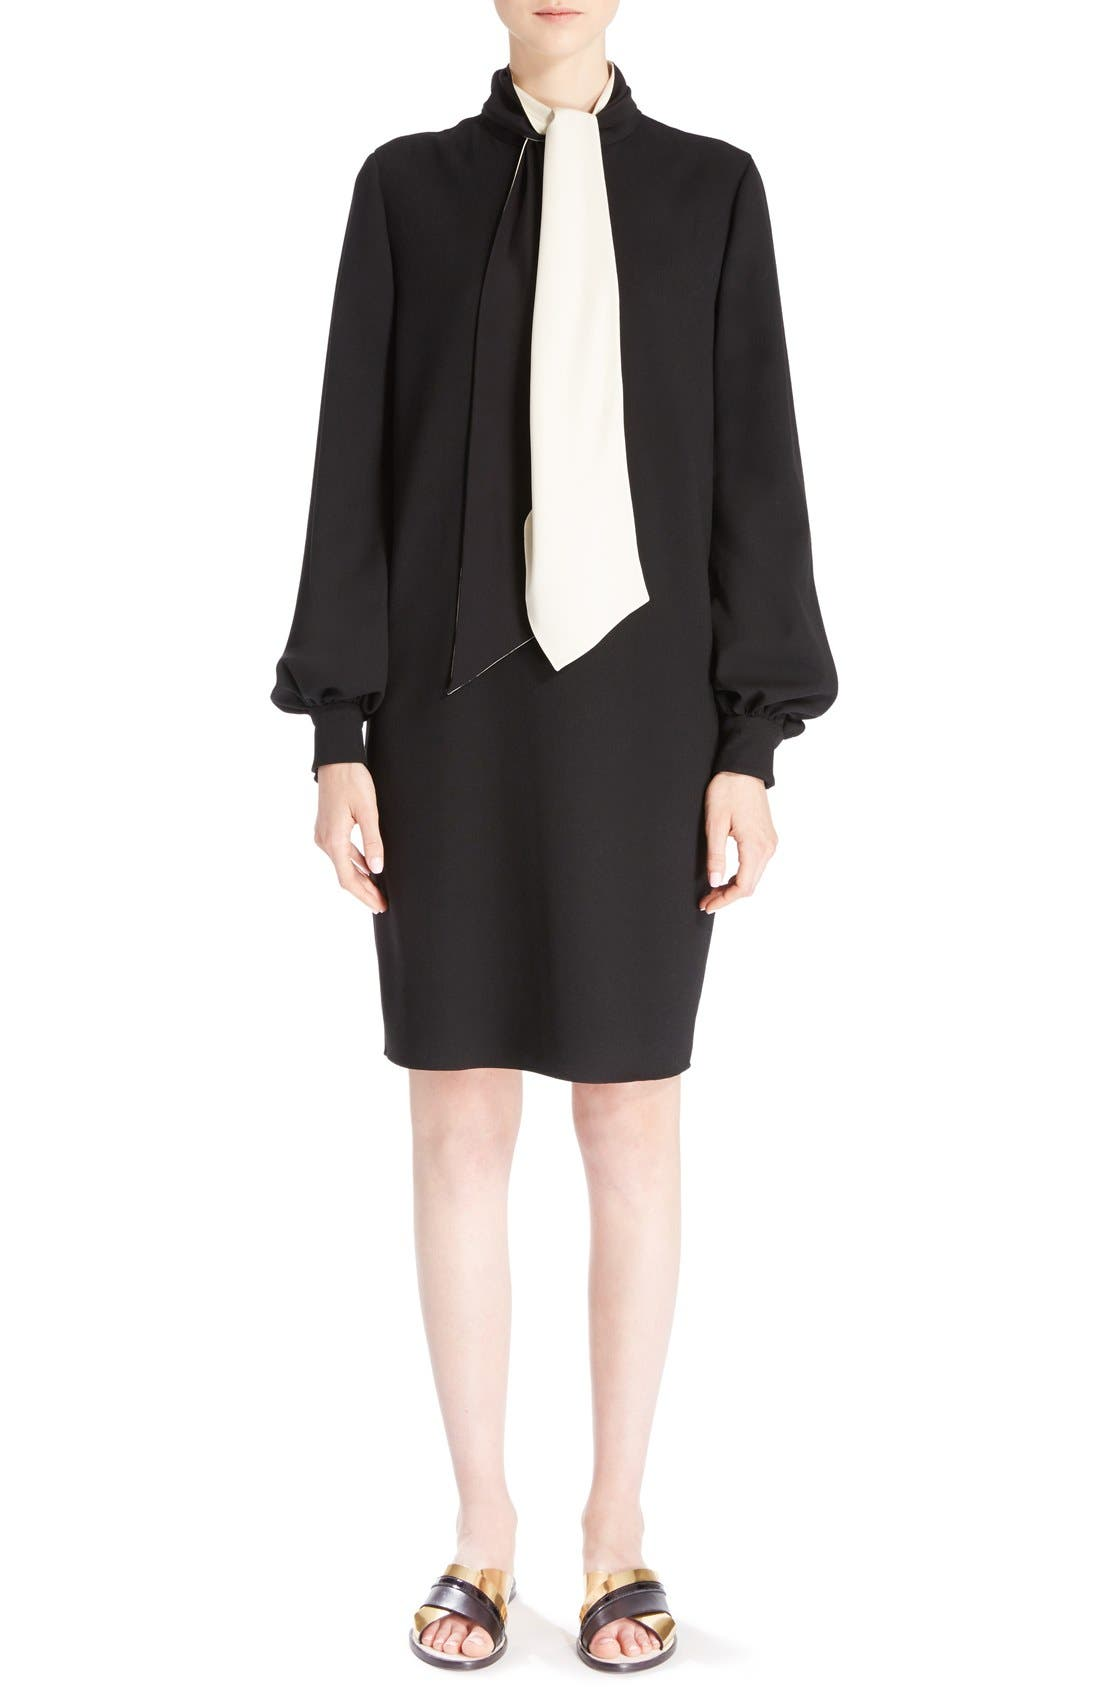 Alternate Image 1 Selected - Lanvin Wool Crepe Dress with Detachable Scarf